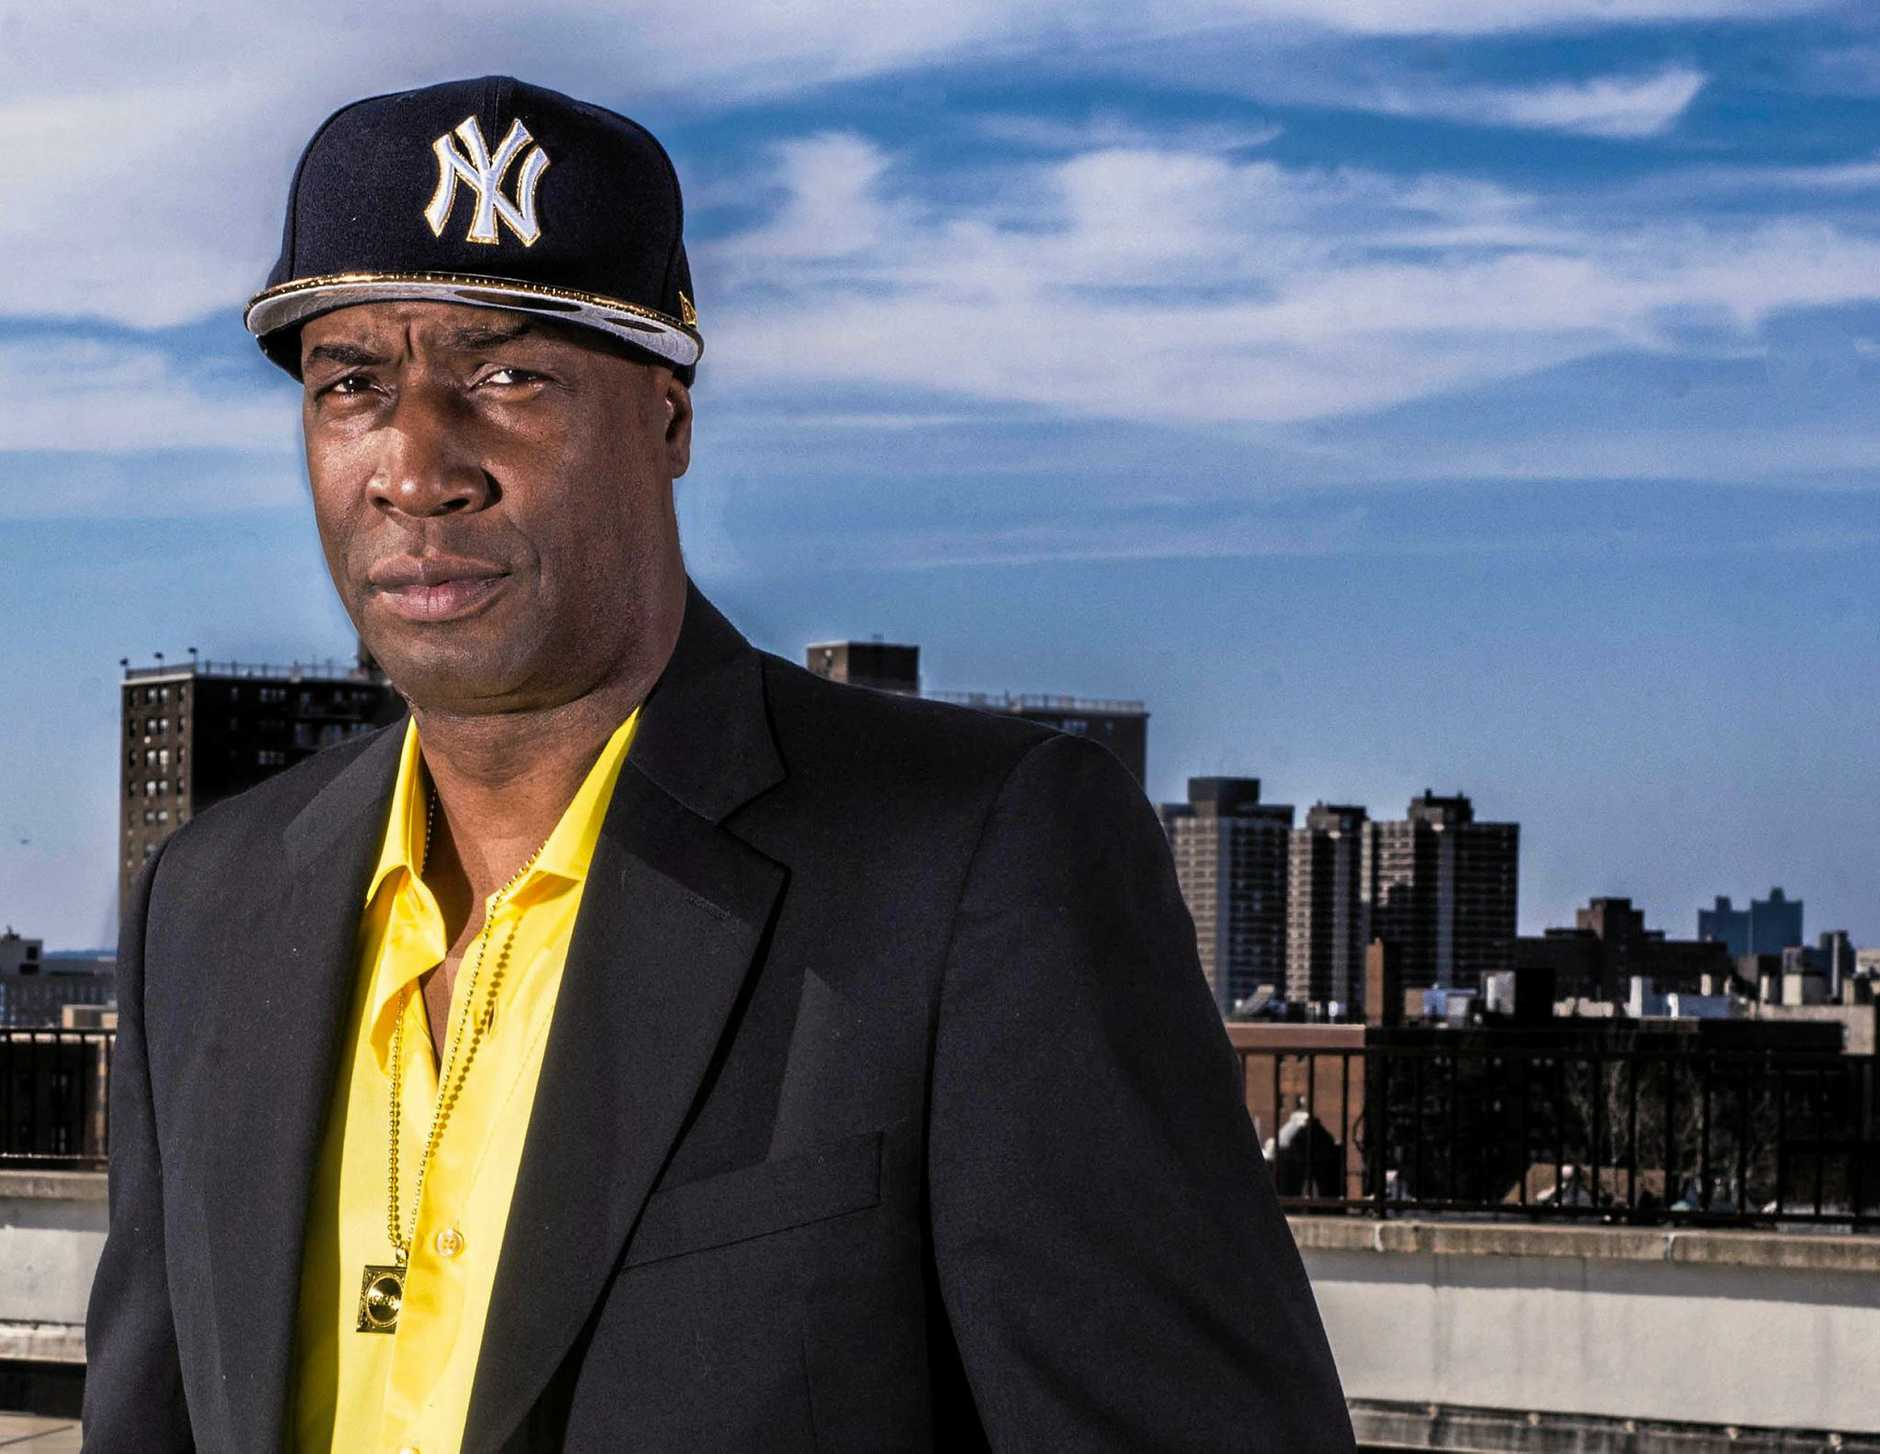 Joseph Saddler, better known as Grandmaster Flash, is a Bajan-American hip hop recording artist and DJ.